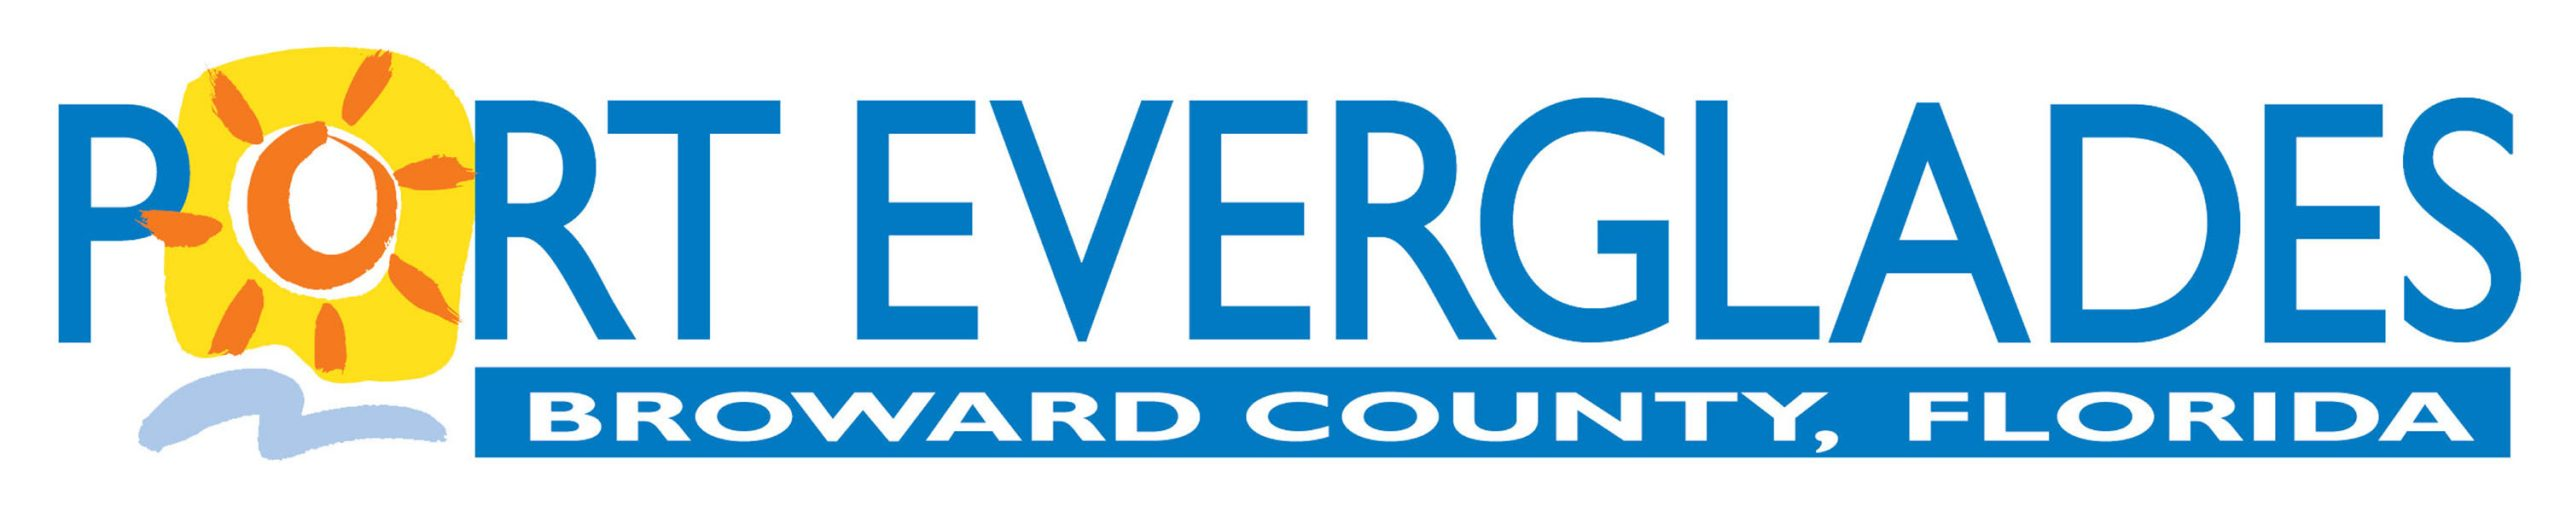 Port Everglades Broward County, FL Logo